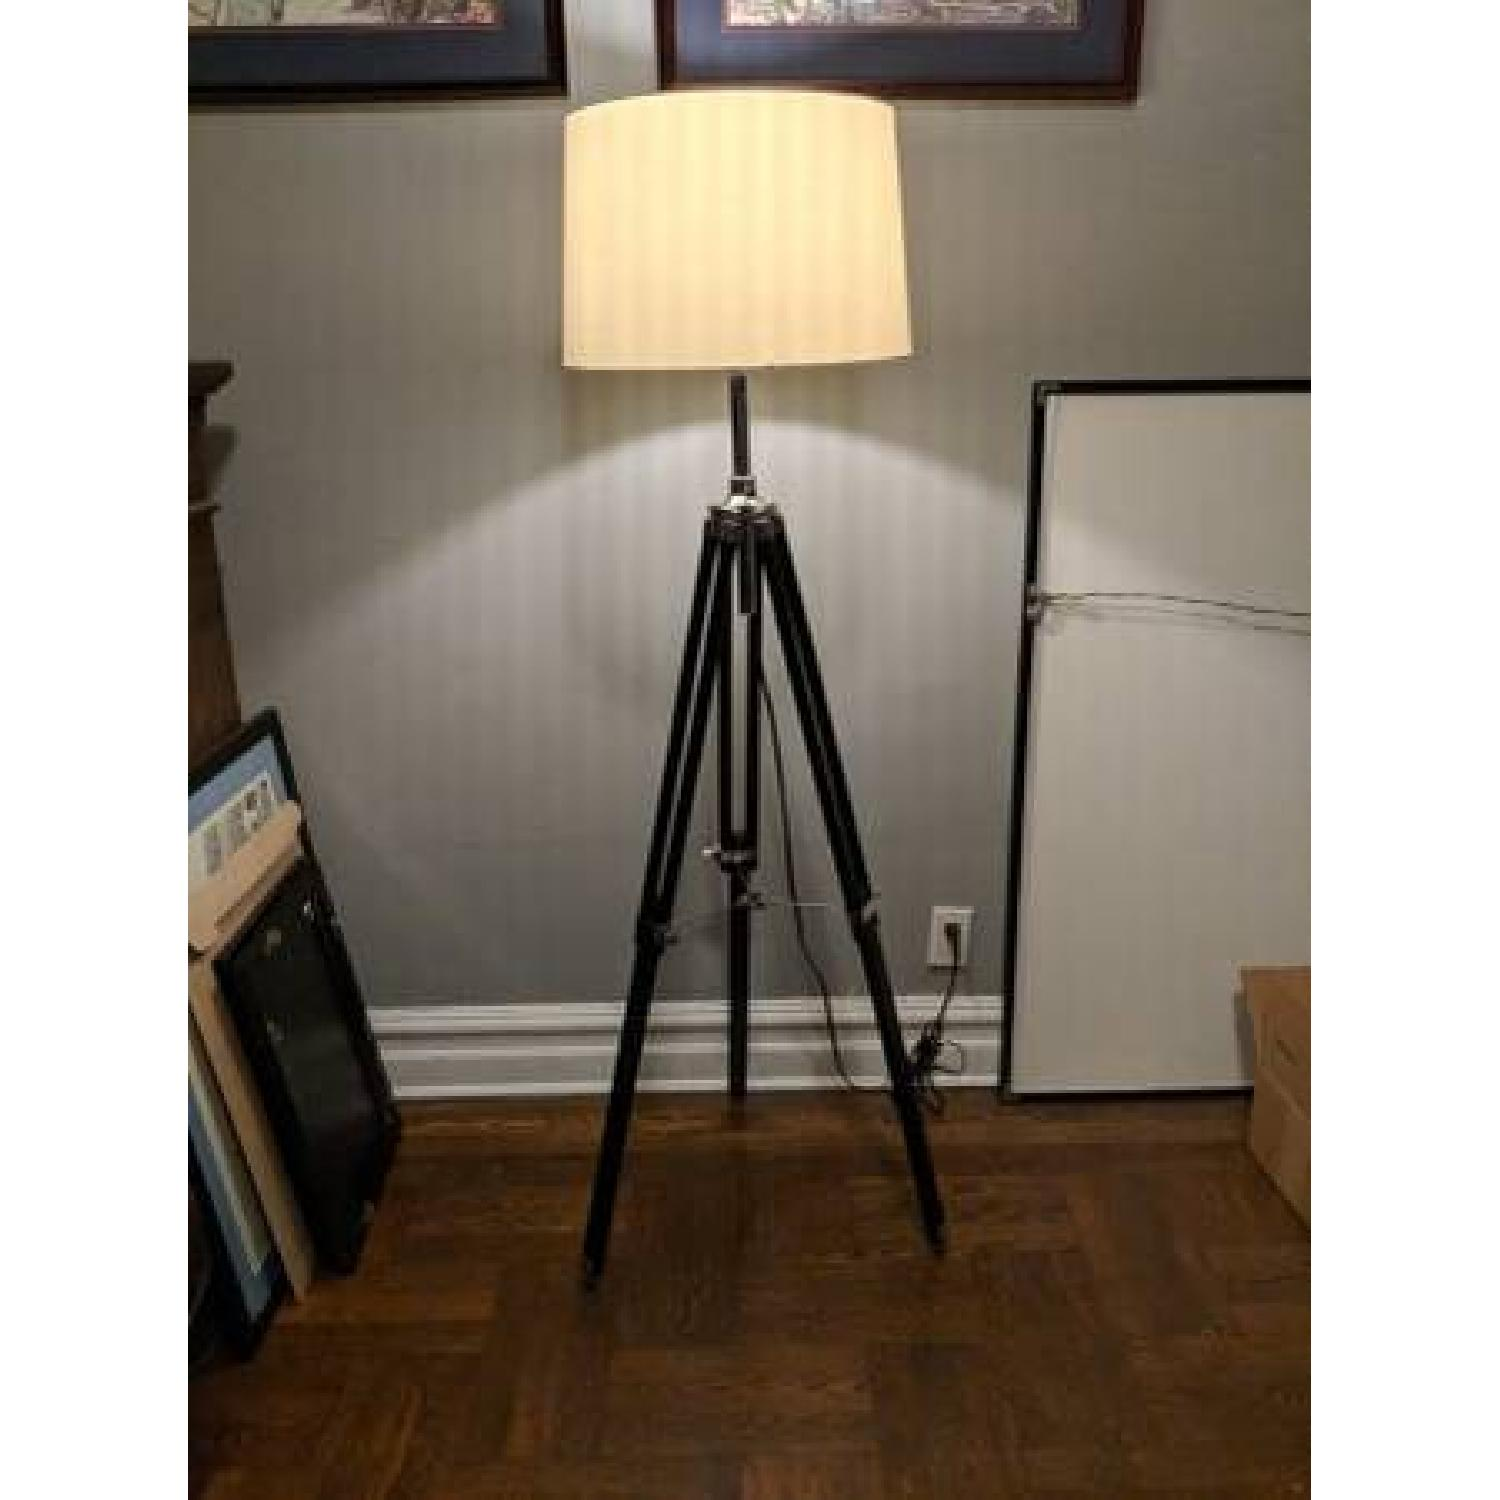 Lite source black tripod floor lamps w white shade aptdeco lite source black tripod floor lamps w white shade 0 aloadofball Gallery